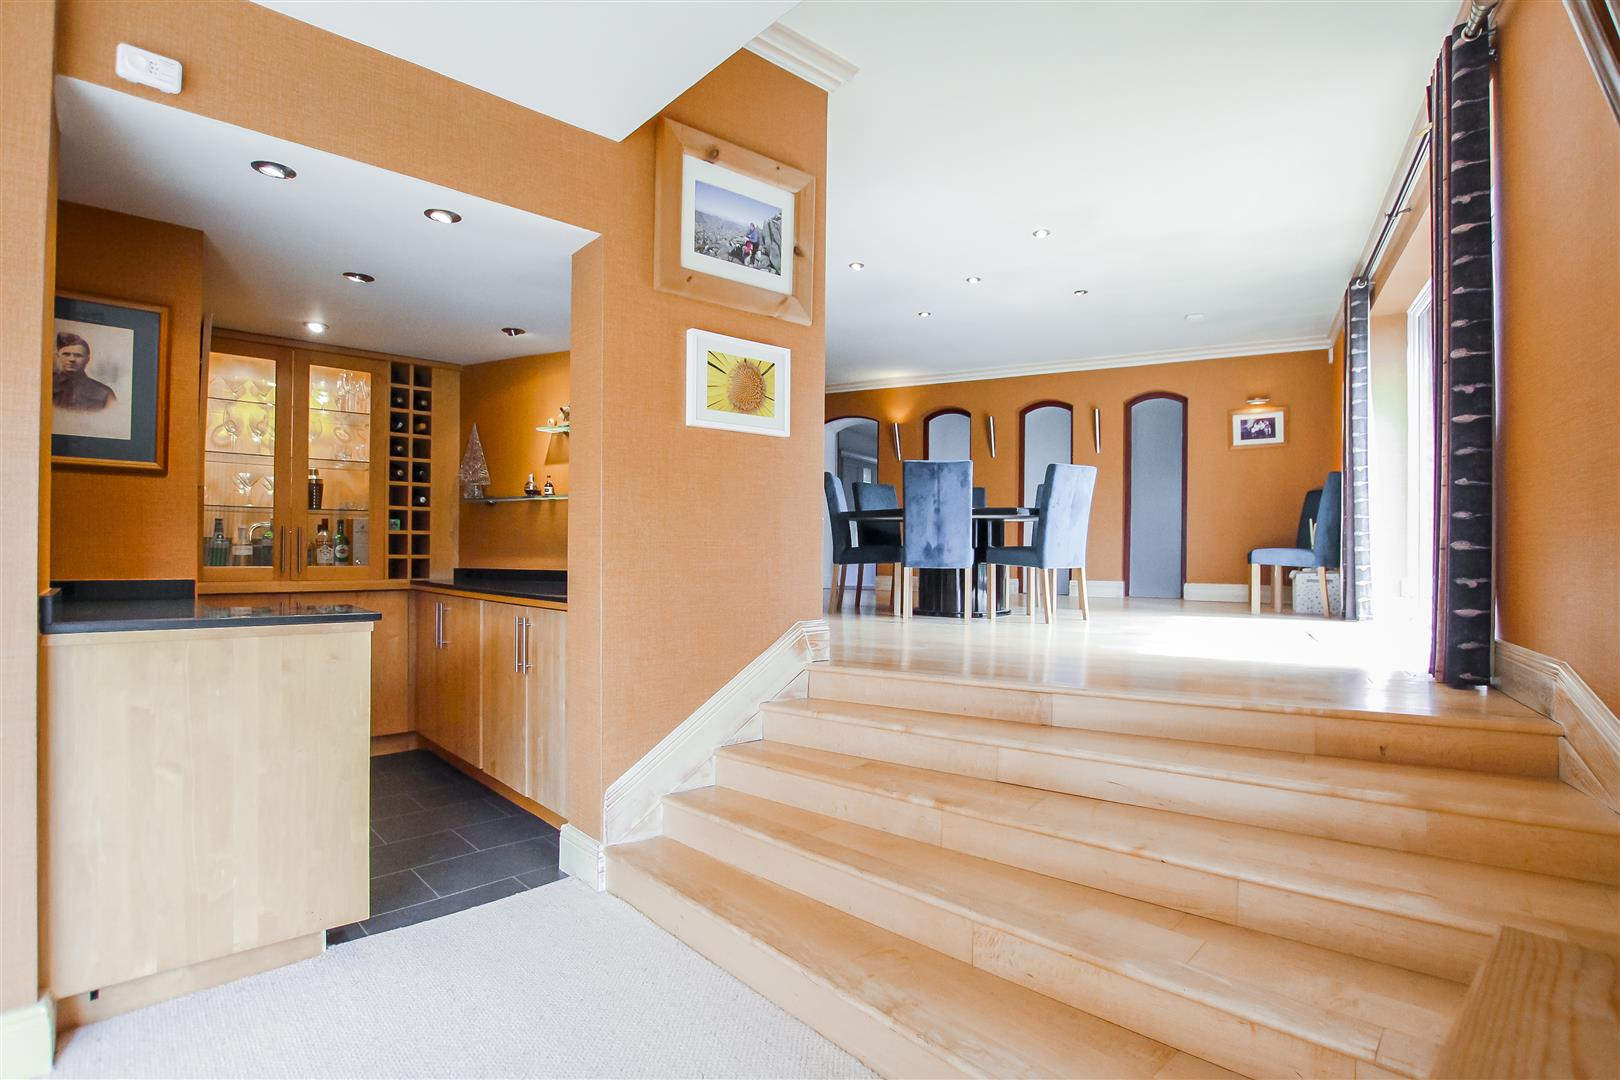 6 Bedroom Detached House For Sale - Bar to Dining room